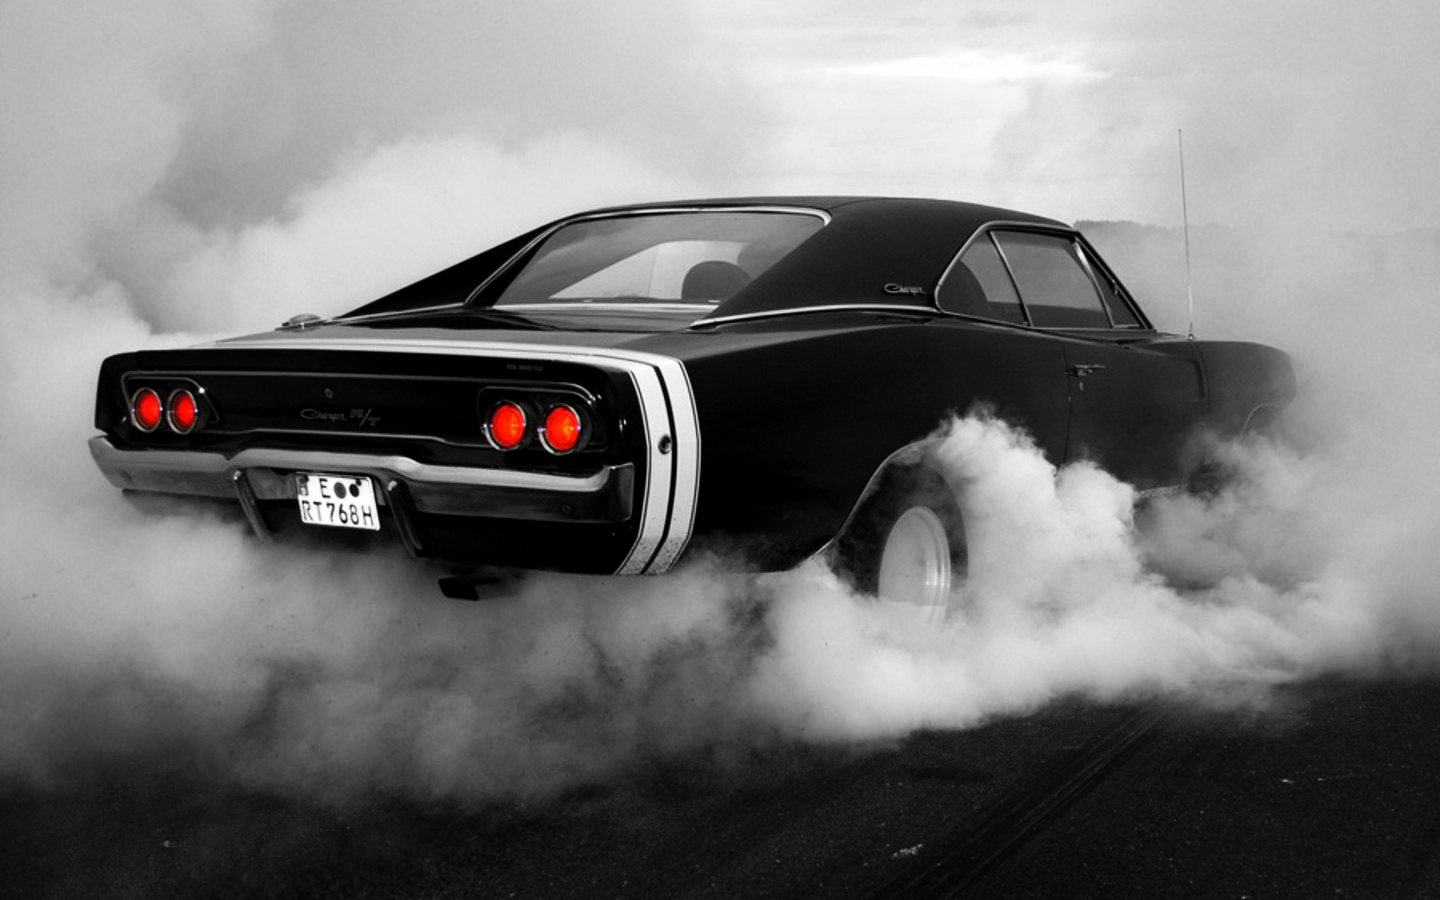 cars muscle cars 1969 monochrome dodge charger rt burnout dodge charger vi hd wallpaper - Dodge Charger 1969